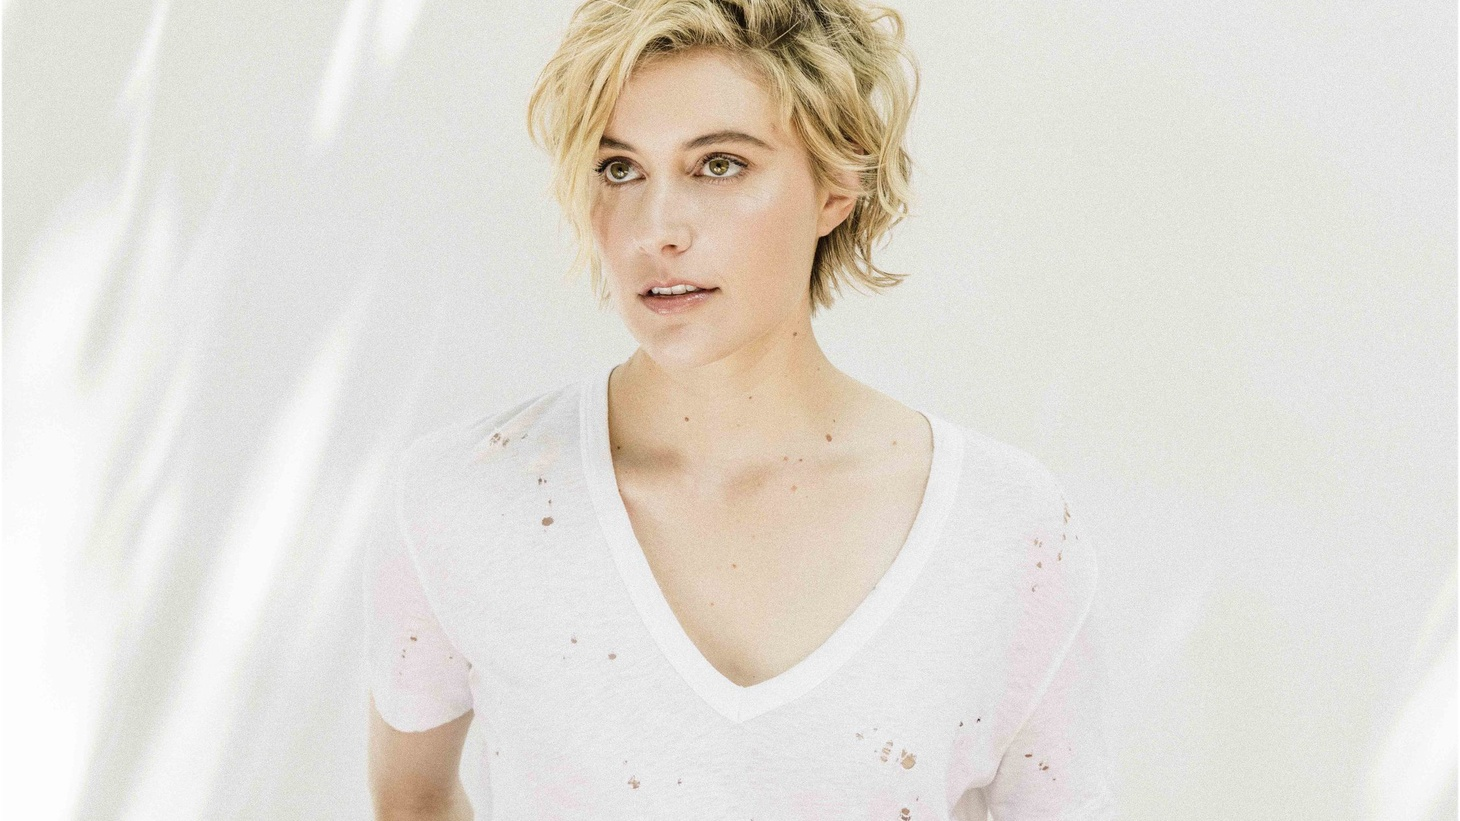 """Actress, screenwriter, and filmmaker Greta Gerwig describes herself as a person who """"lives with very vivid emotions"""" and she gravitates towards musicians who are like that as well, from Kate Bush and Judee Sill to Brian Eno."""